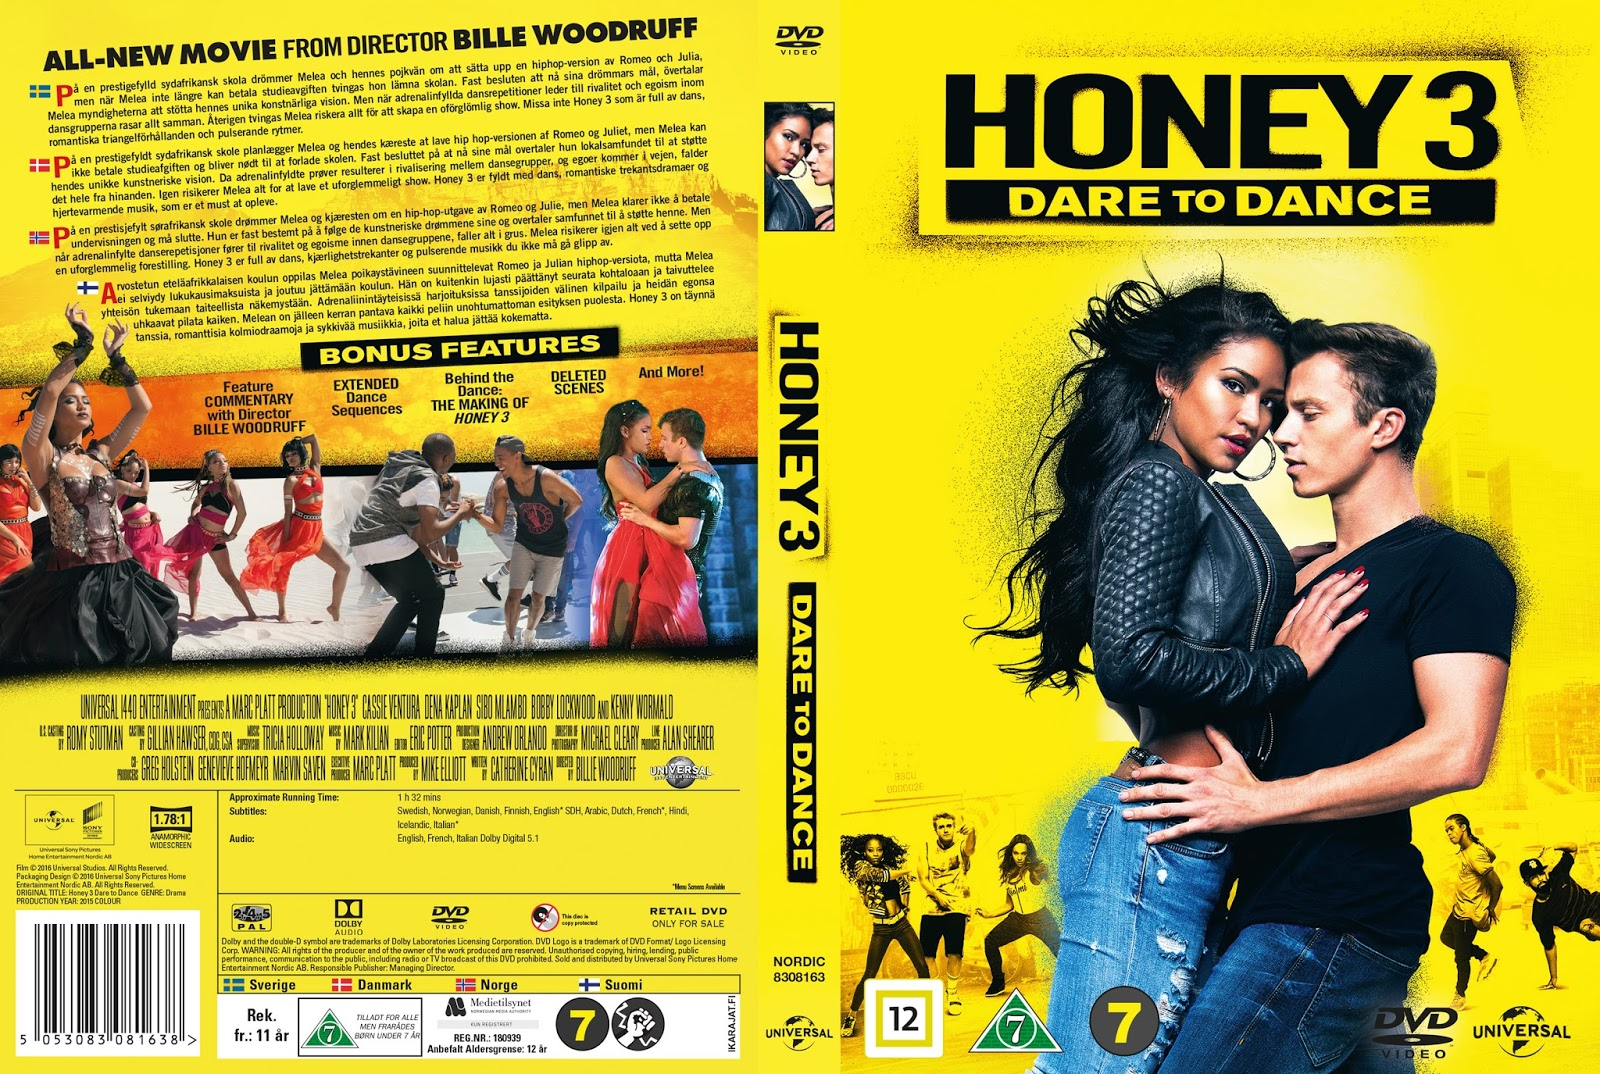 Honey 3 No Ritmo do Amor BDRip Dual Áudio Honey 2B3 2BNo 2BRitmo 2Bdo 2BAmor 2BXANDAODOWNLOAD